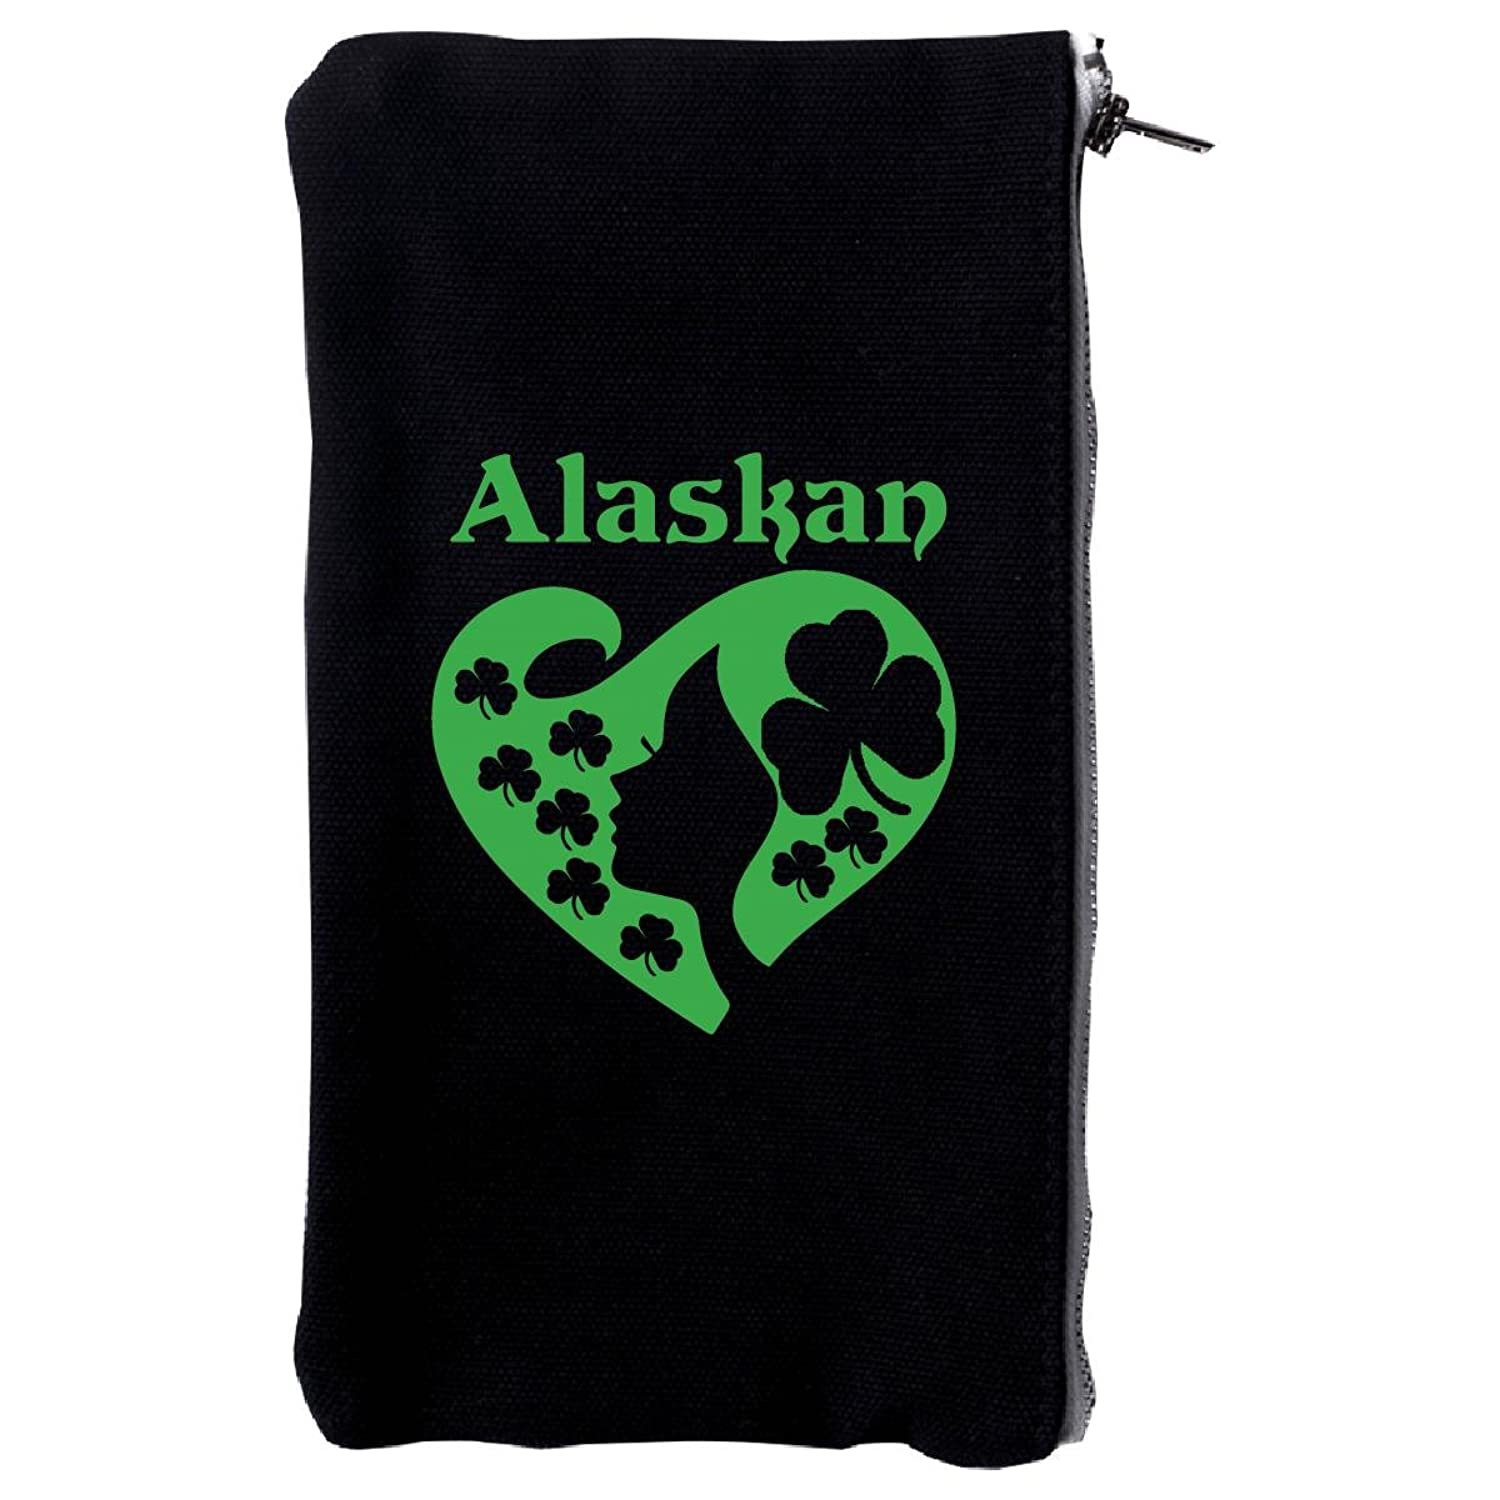 Alaskan St Patrick Day Girl Heart Irish Green - Make Up Case